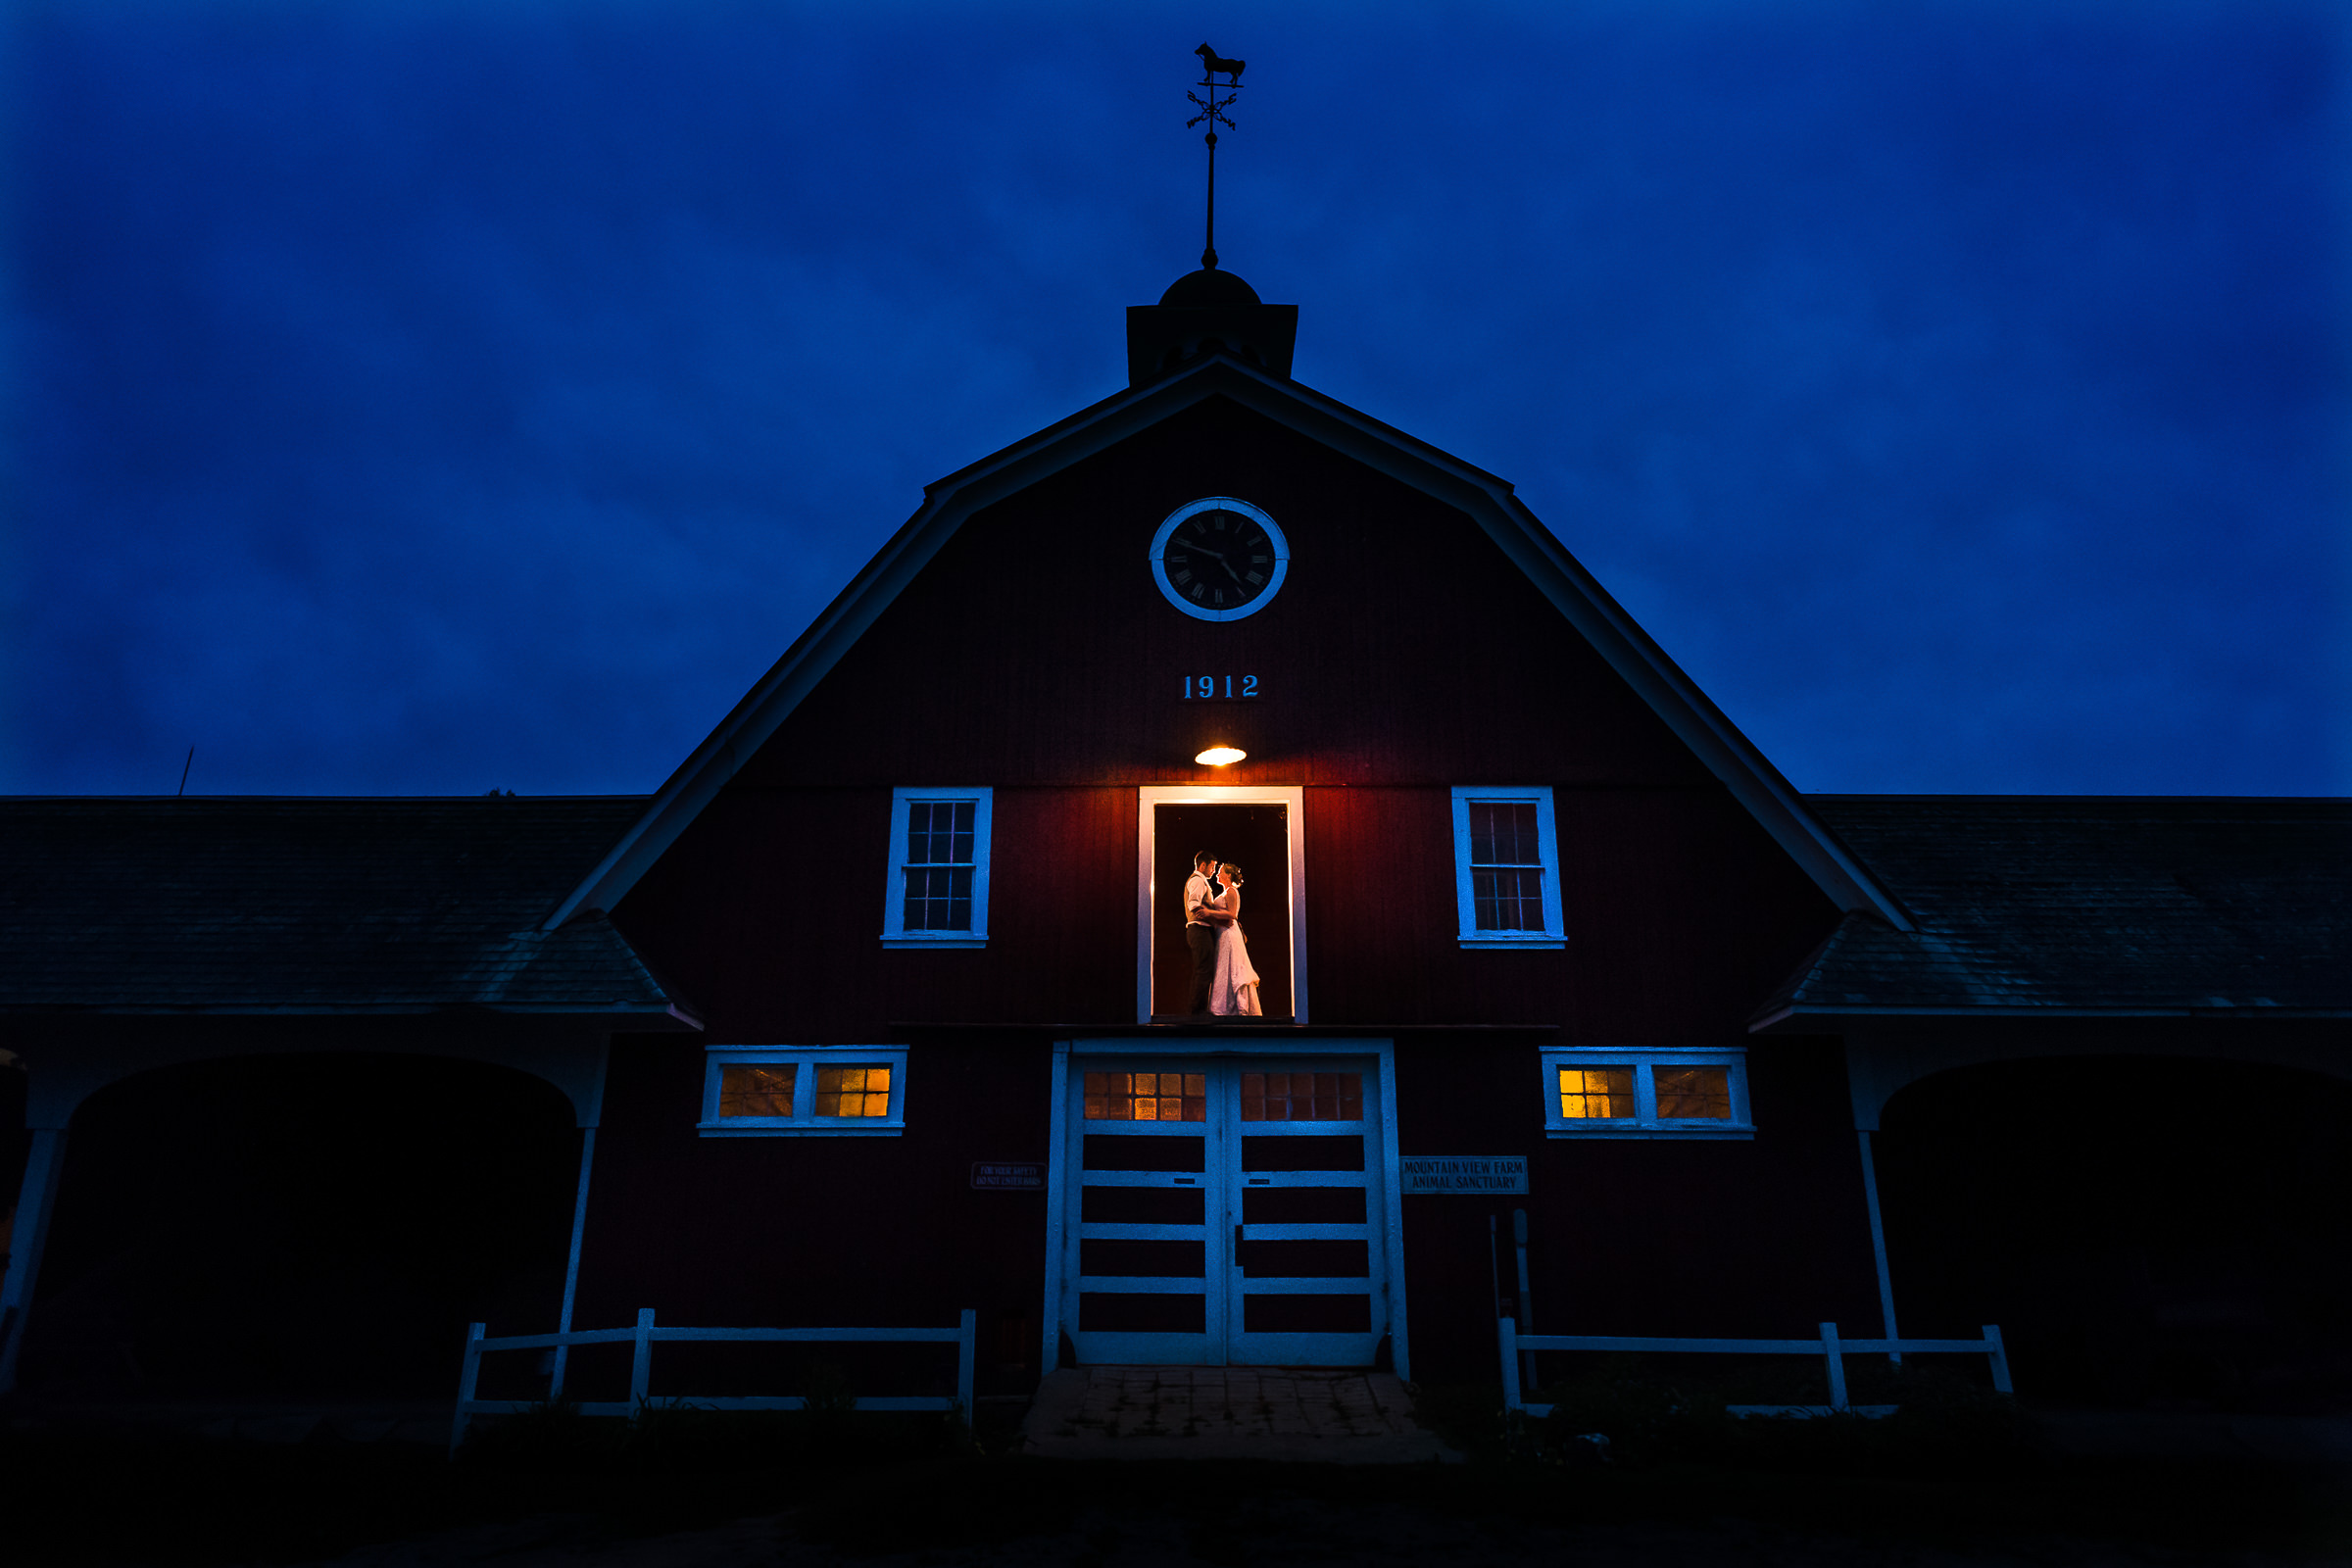 ride-and-groom-portrait-in-the-barn-at-twilight-photo-by-hannah-photography.jpg